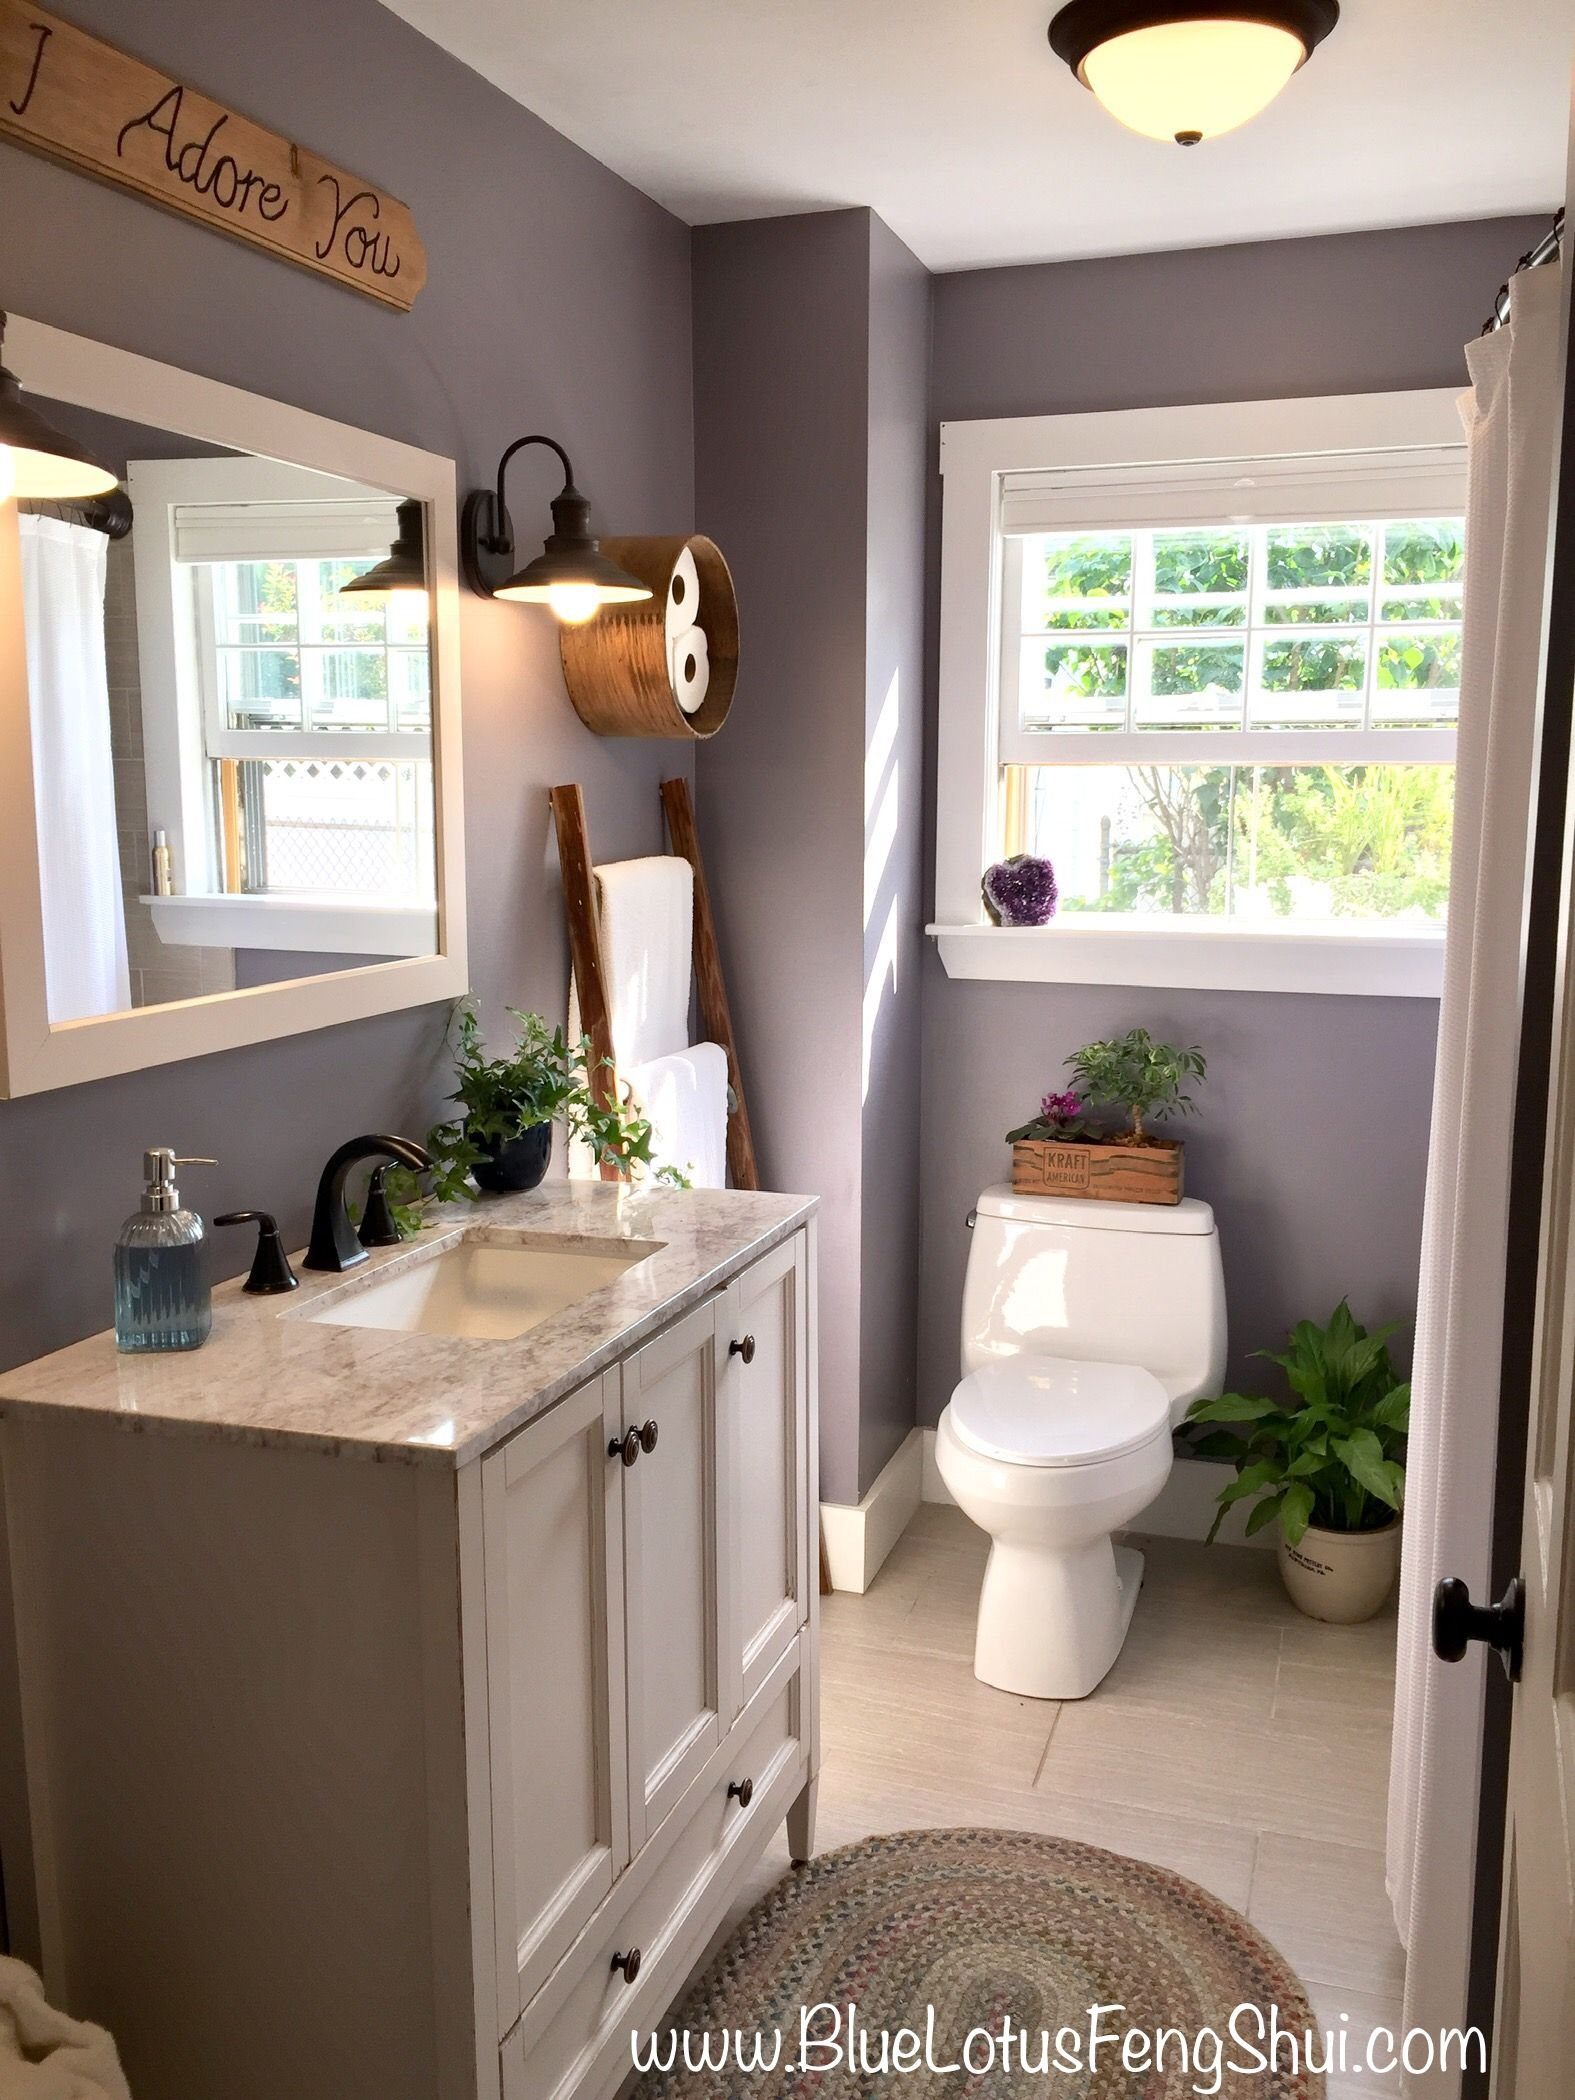 Stunning Farmhouse Rustic Bathroom With Sherwin Williams Gris